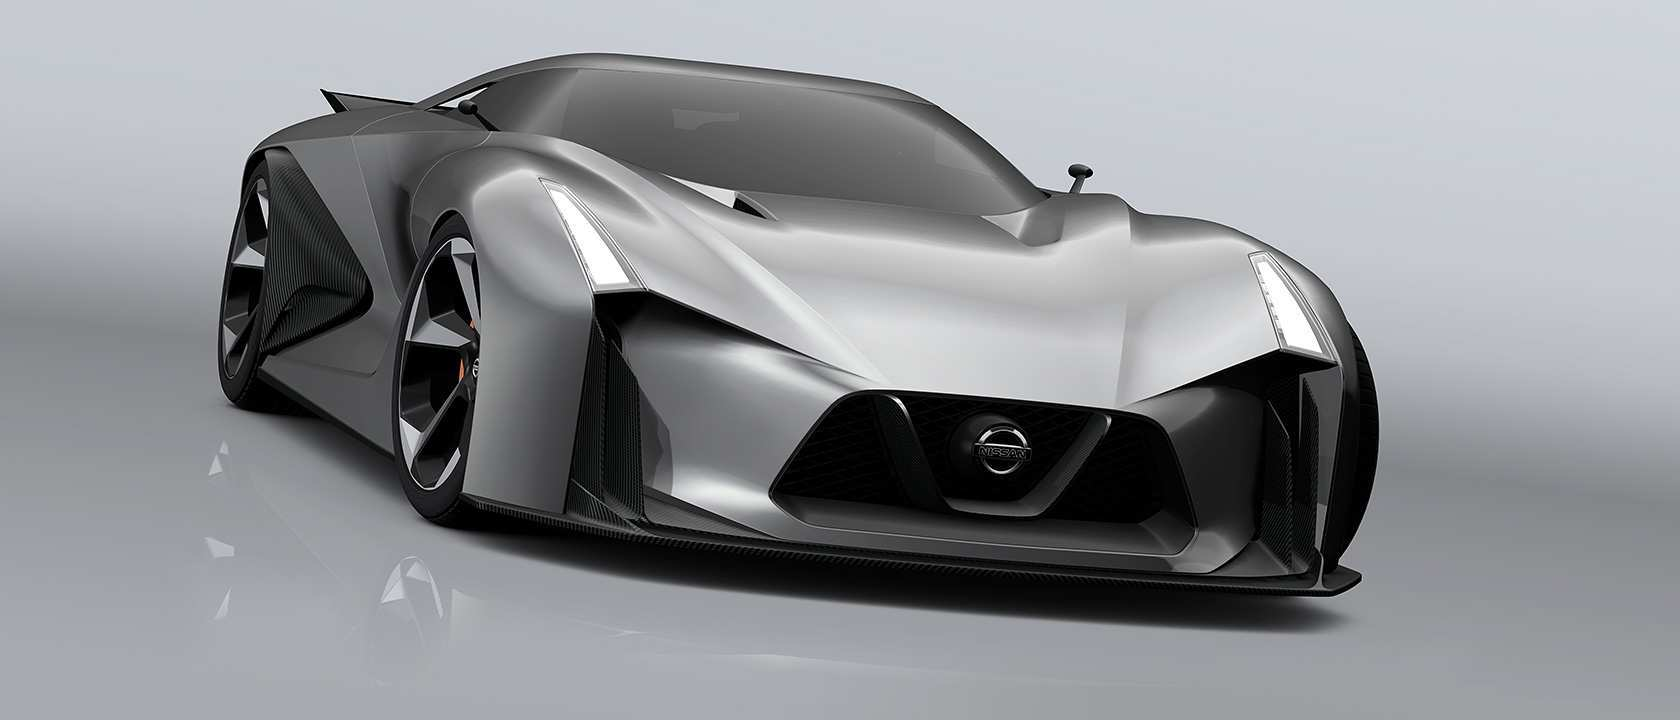 98 Gallery of Nissan 2020 Vision Gt Speed Test with Nissan 2020 Vision Gt